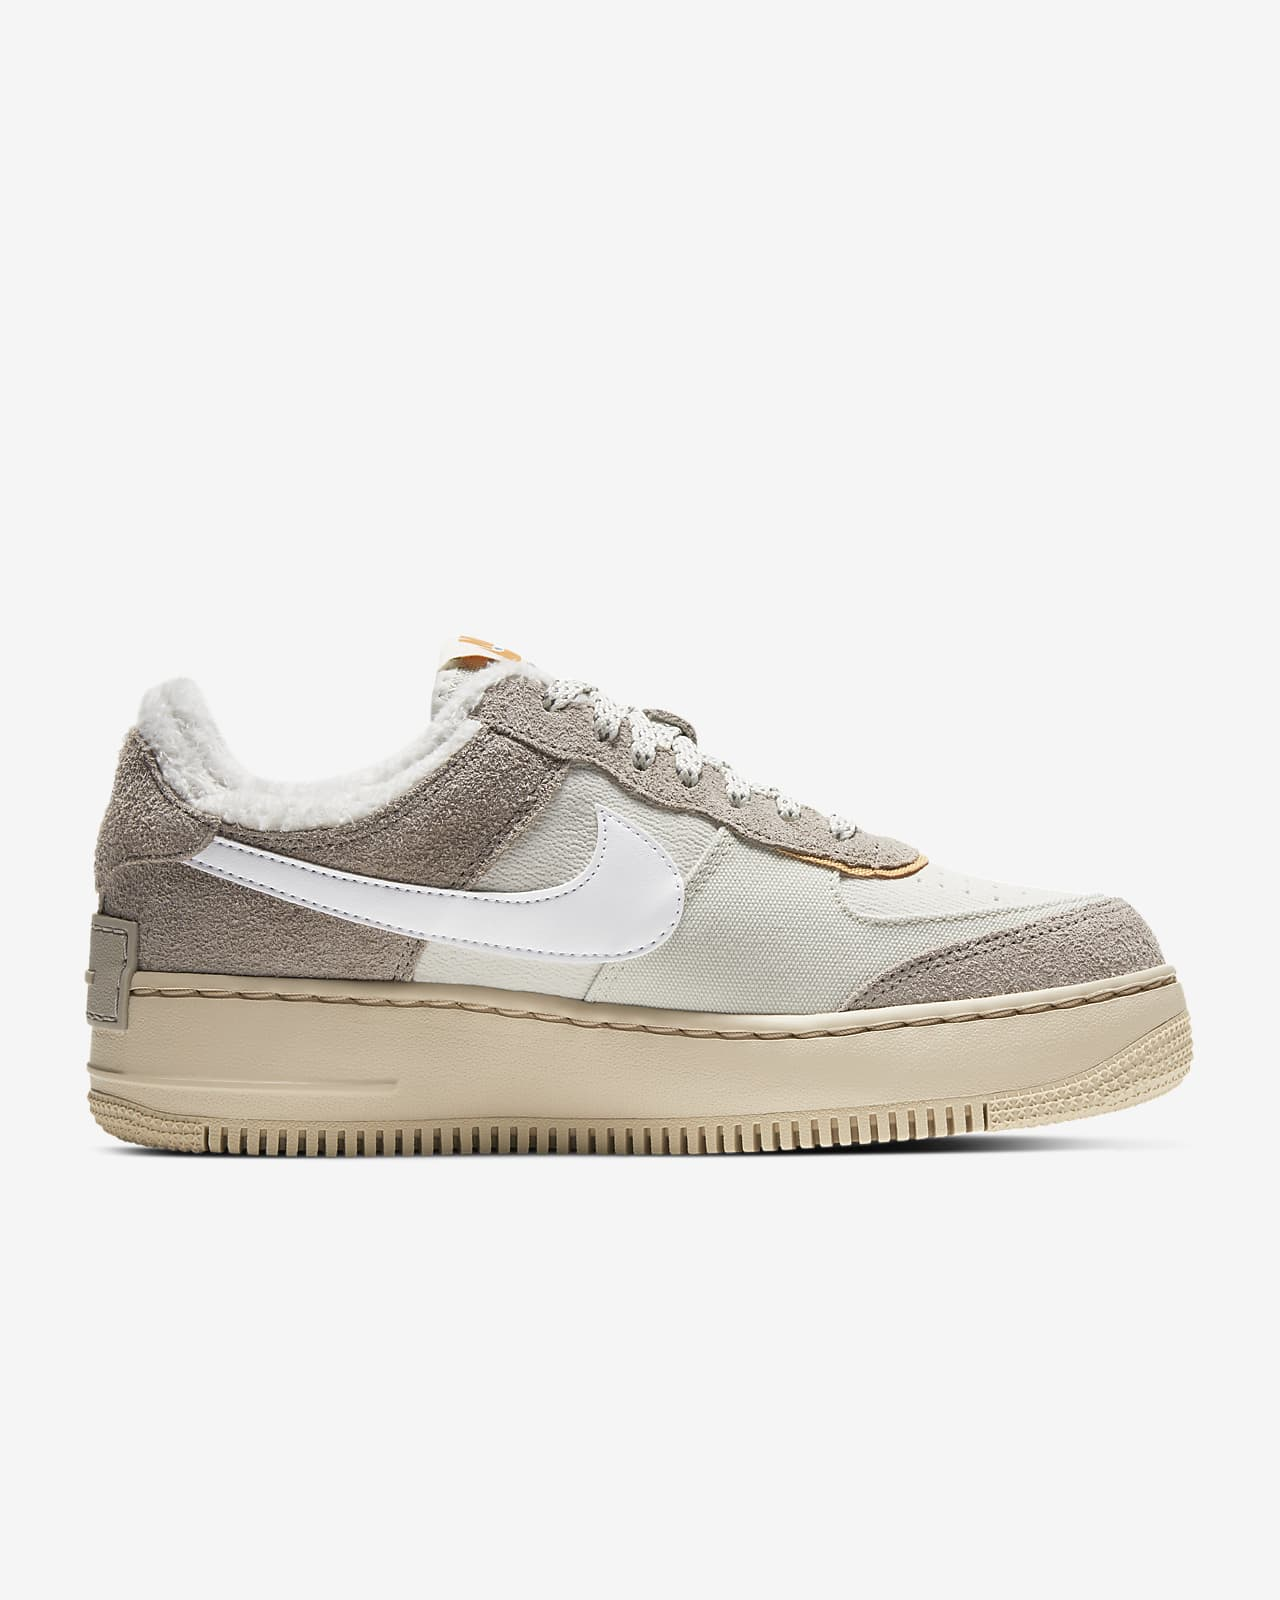 Nike Air Force 1 Shadow Women S Shoe Nike Jp I chose the review the 'celestial gold/ pale ivory' colorway, simply. nike air force 1 shadow women s shoe